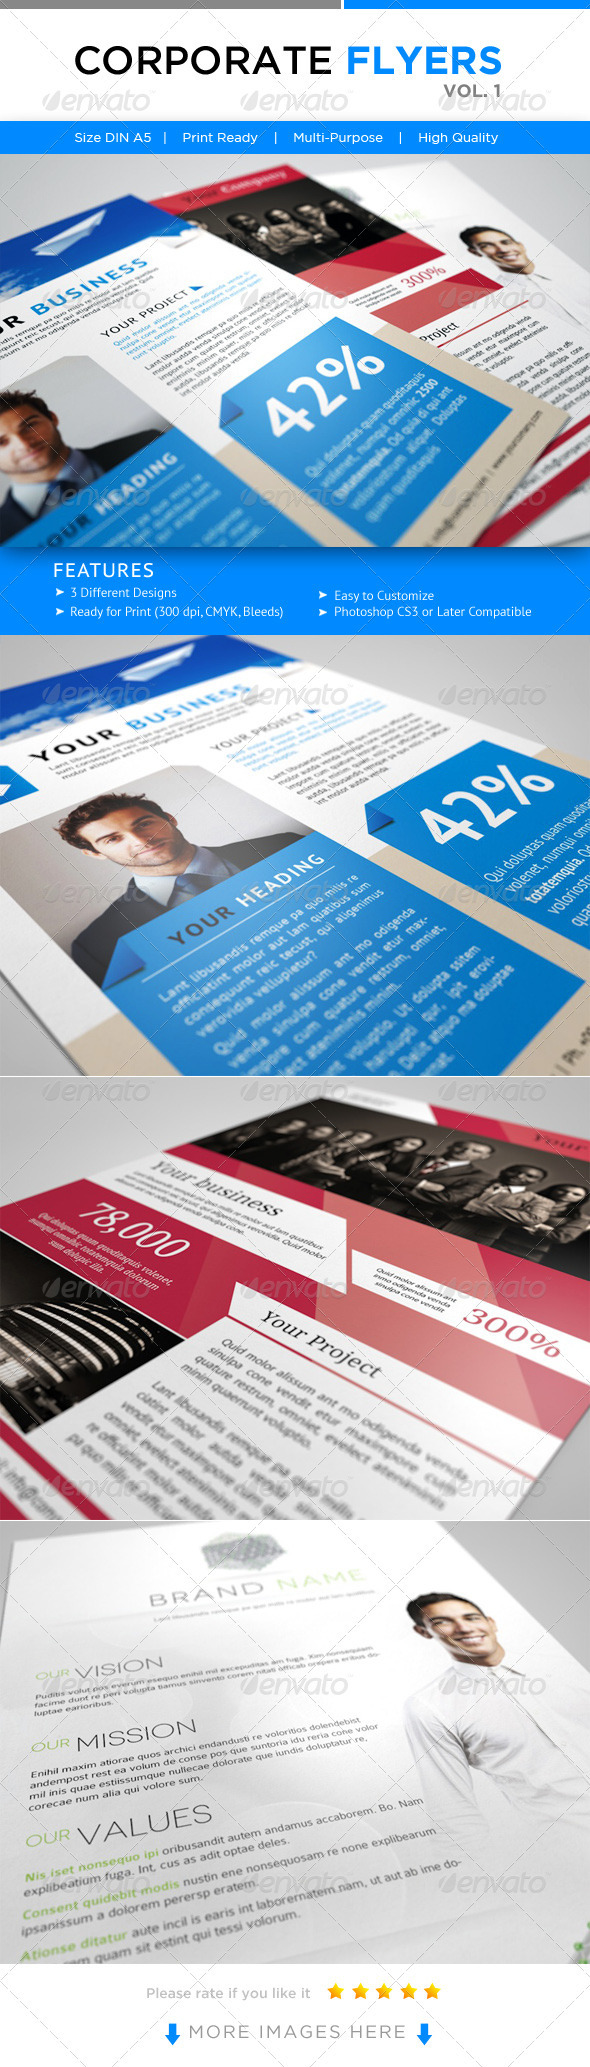 Corporate Flyer's Vol. 1 - Corporate Flyers